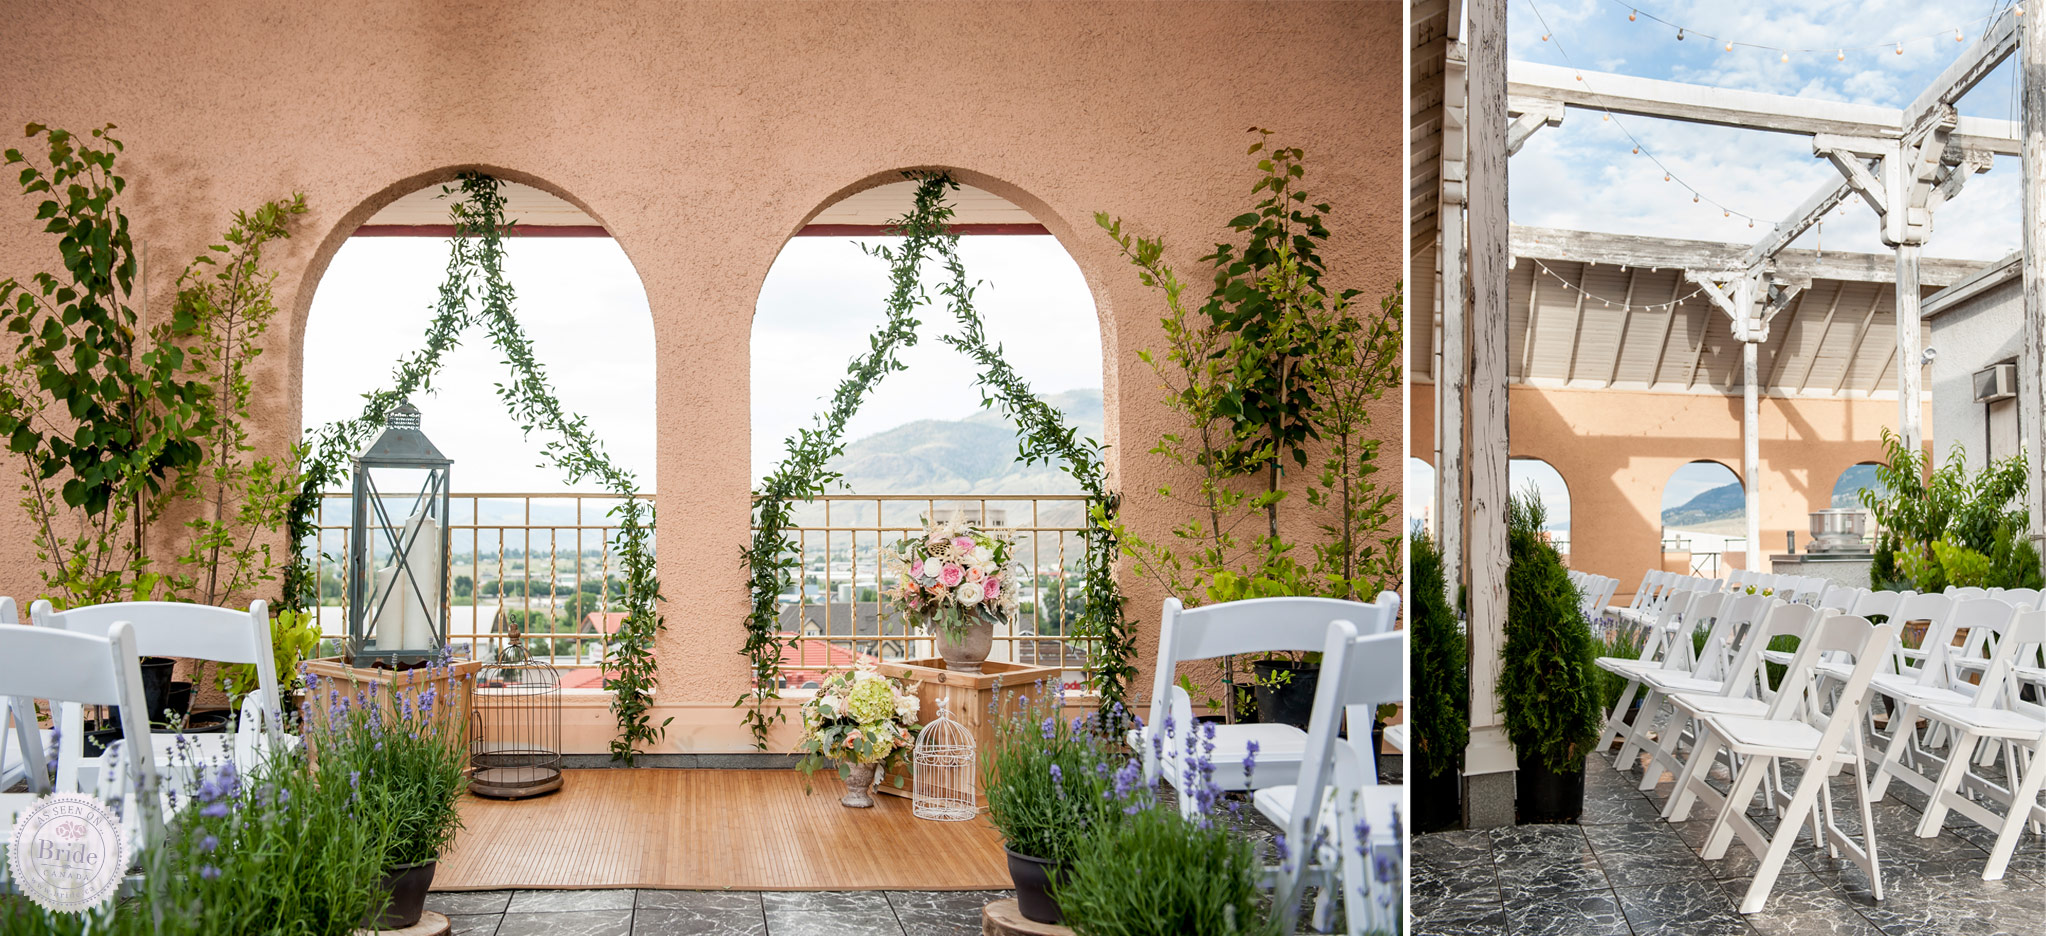 Outdoor Wedding Decoration Ideas 73 Good Greenery and pastel florals